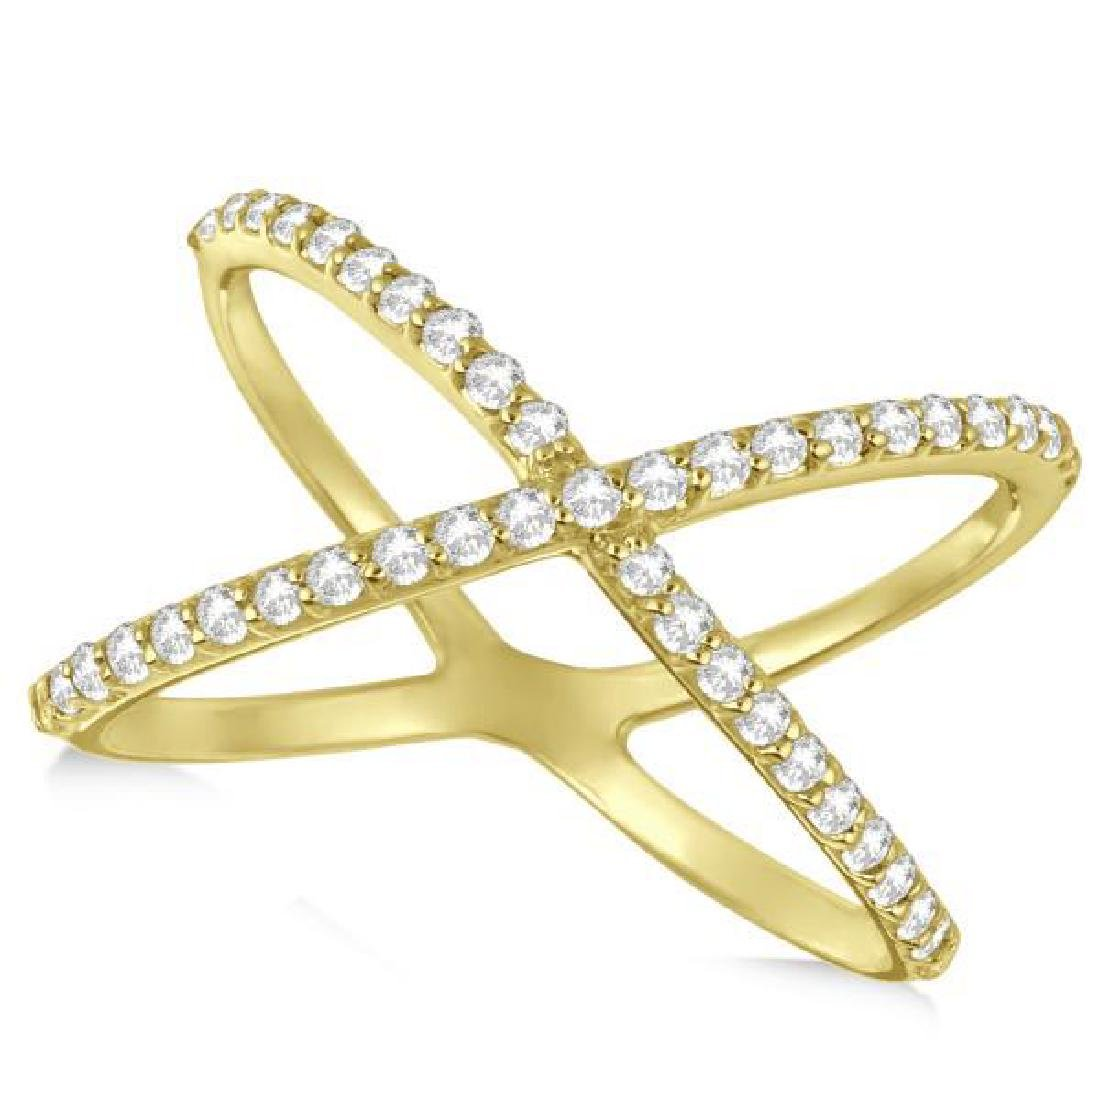 X Shaped Ring with Diamonds Abstract Design 14k Yellow